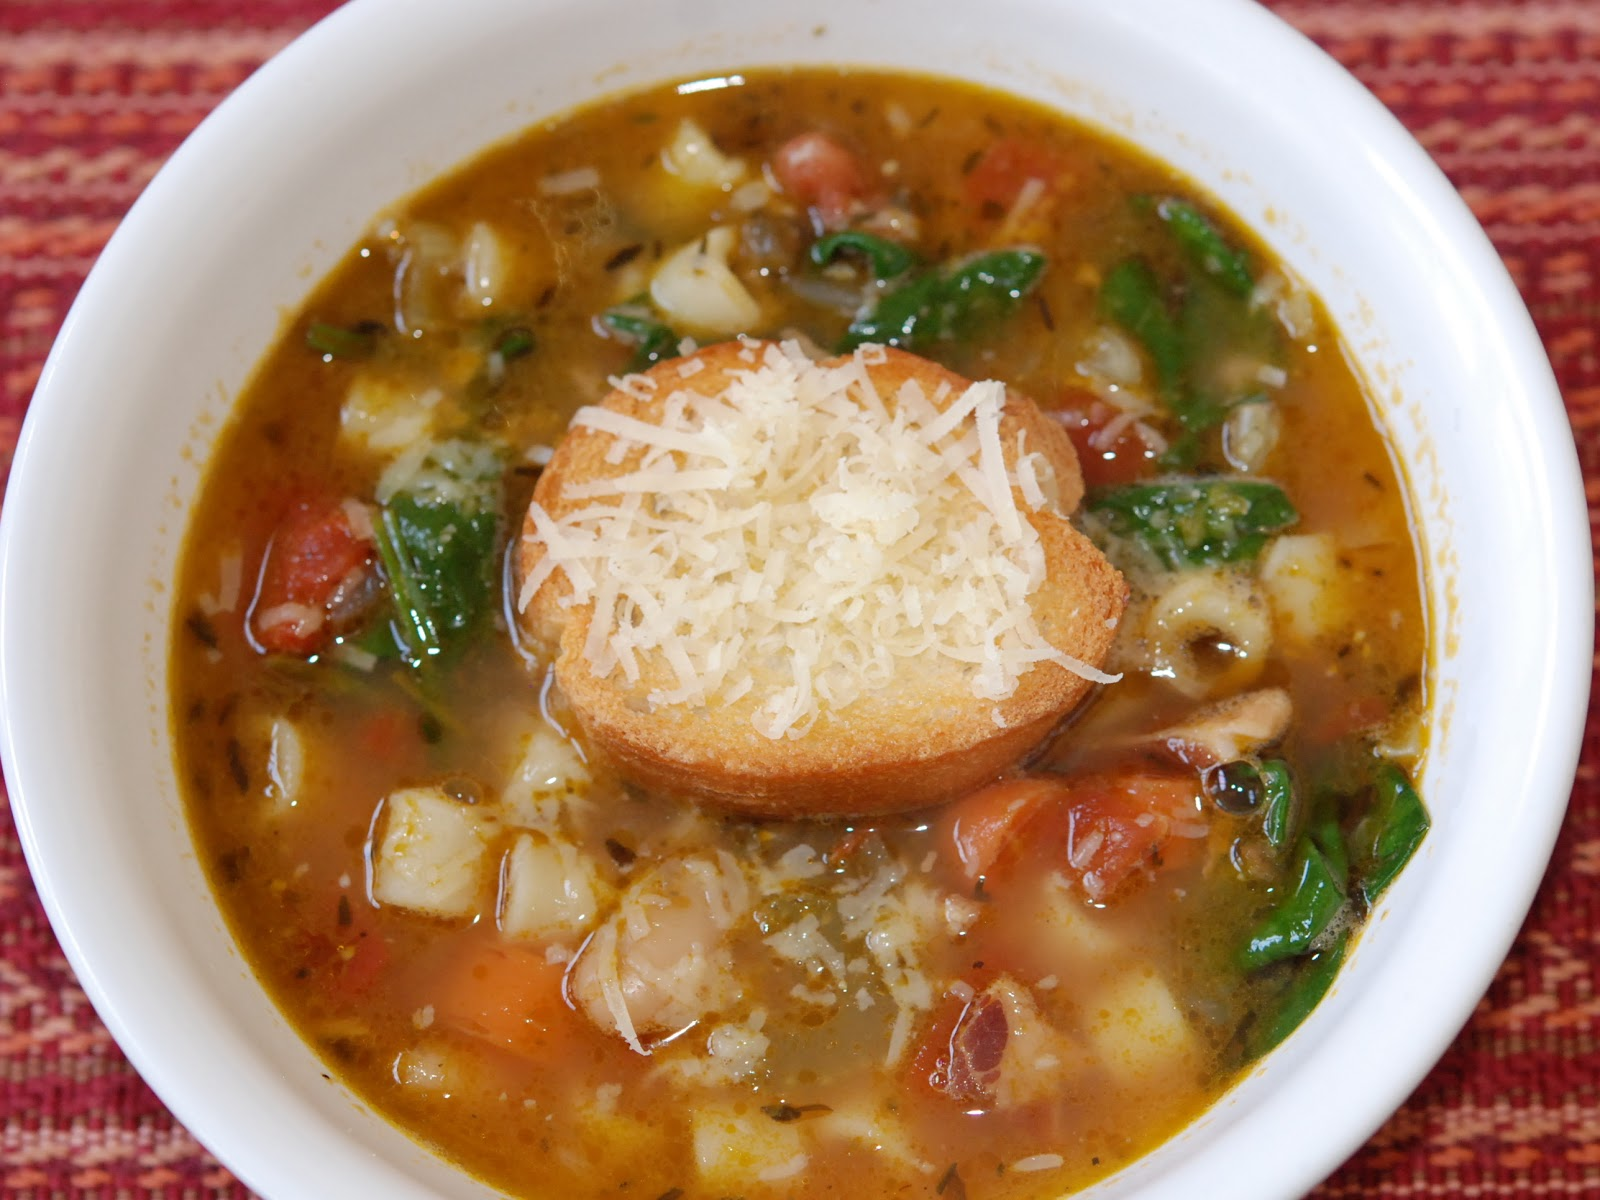 Ina Garten Soup Recipes marys bites: winter minestrone and garlic bruschetta from ina